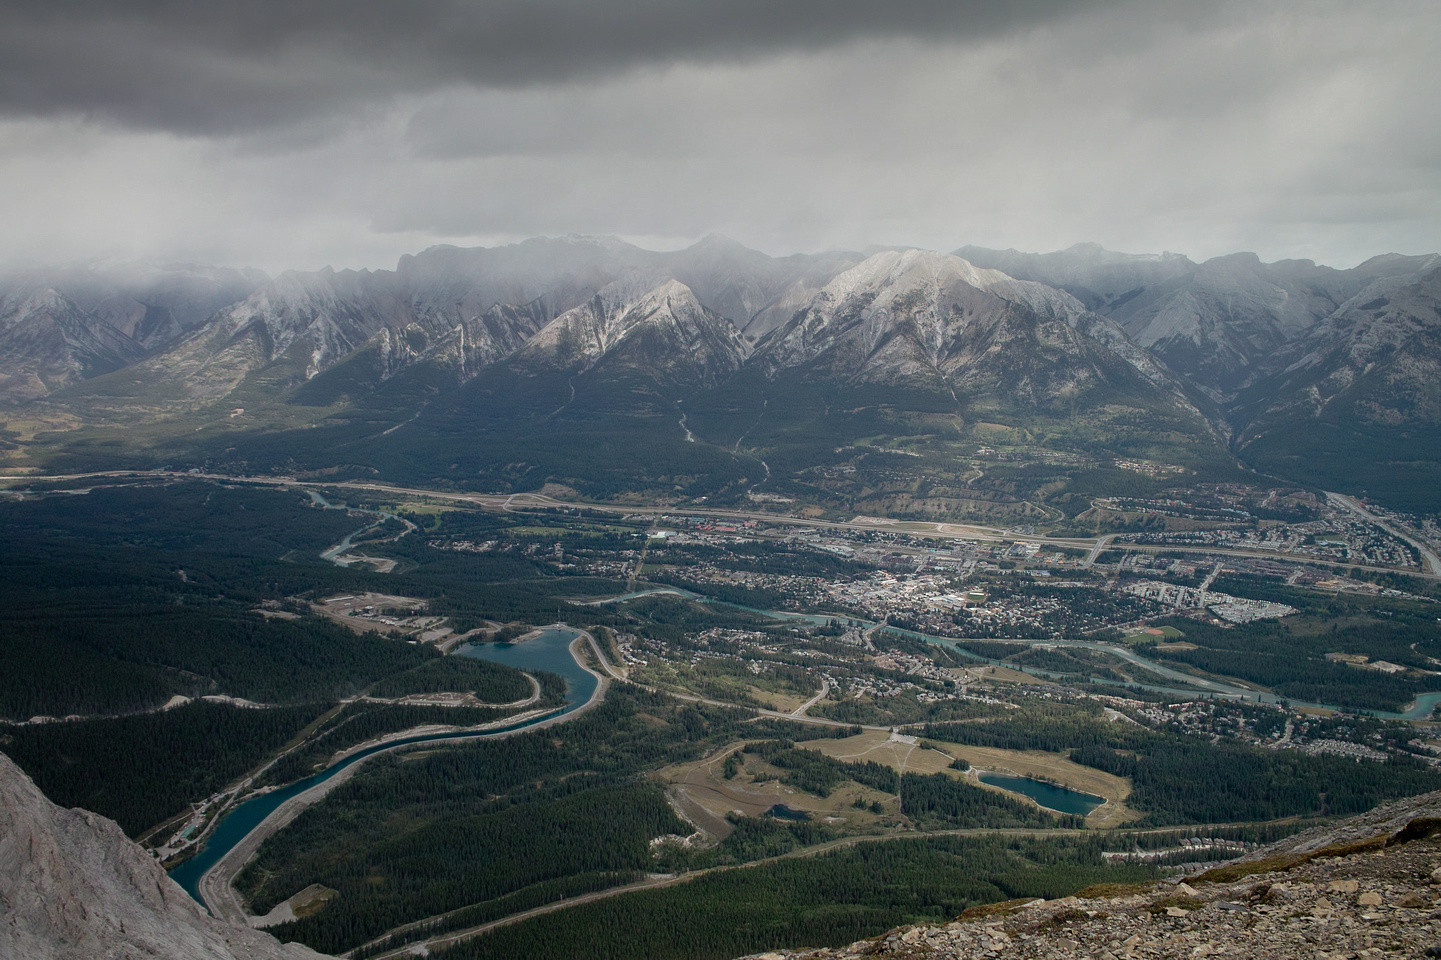 Views over the town of Canmore.